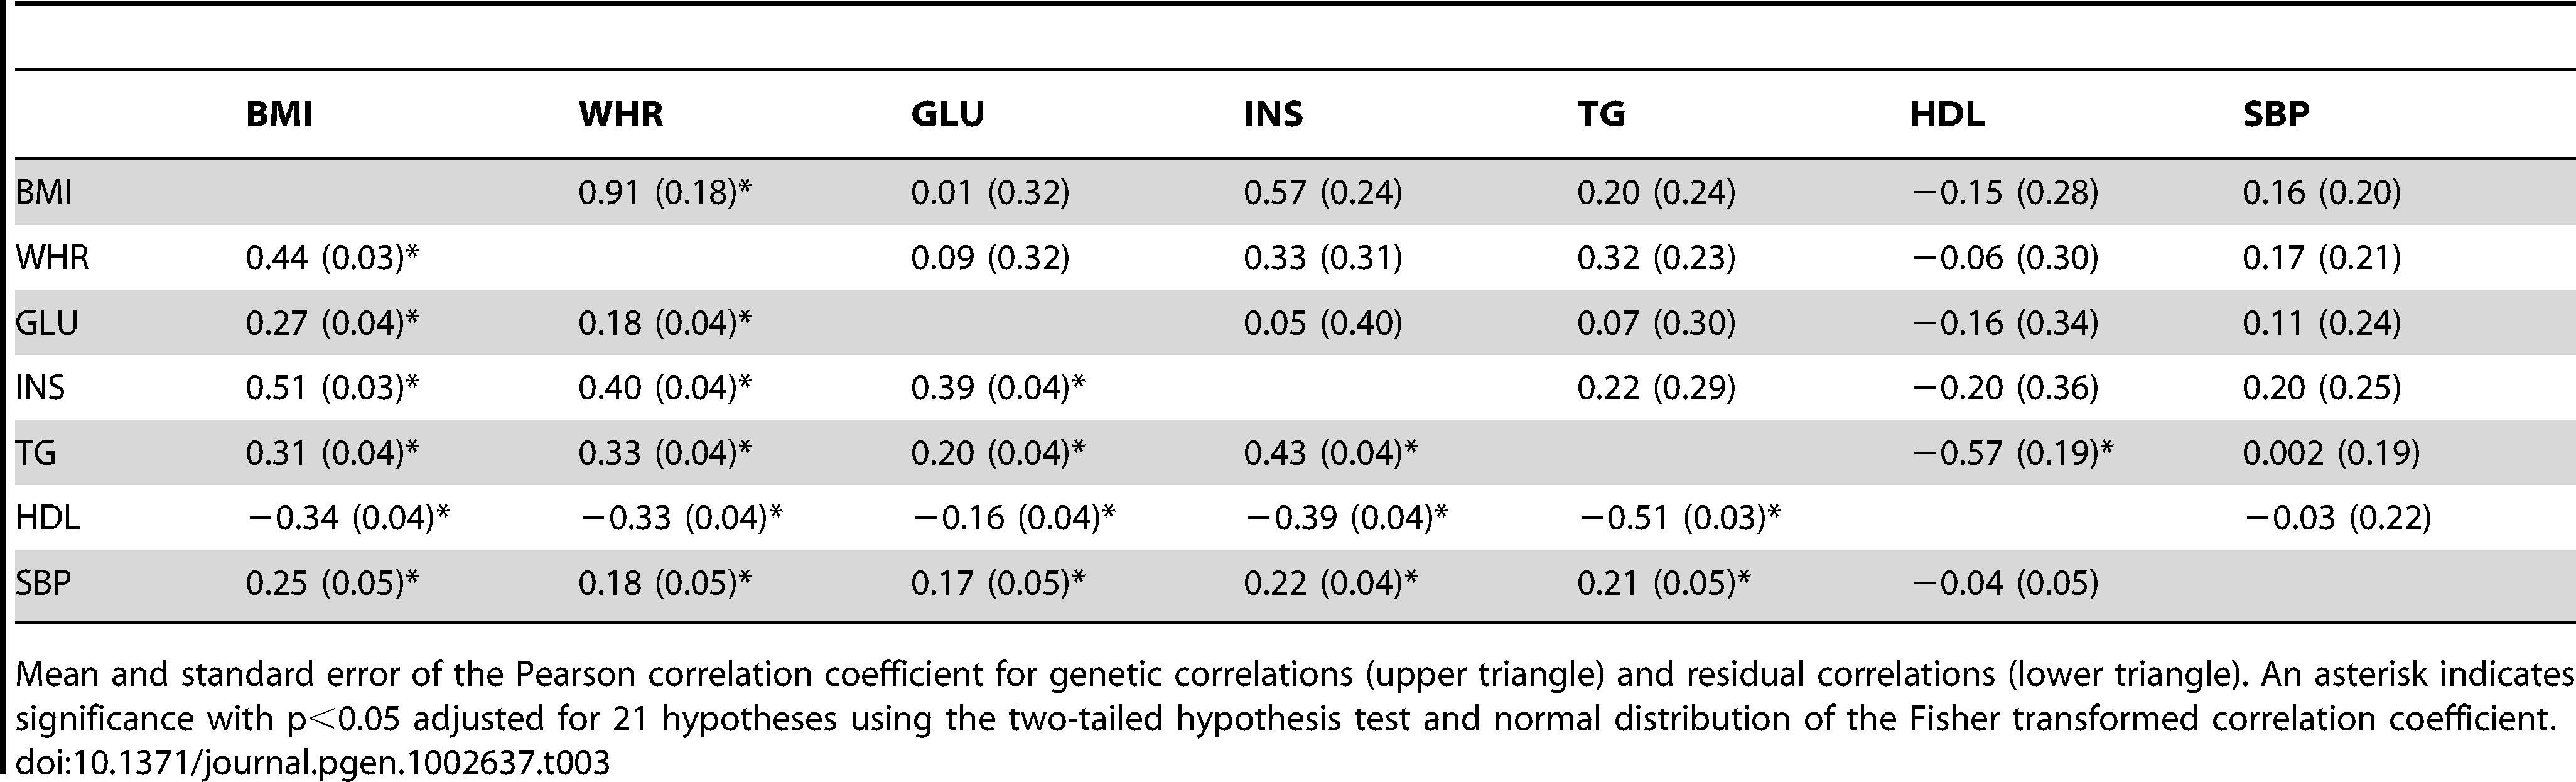 Genetic and residual correlations between MetS traits in the ARIC population among unrelated individuals from the bivariate REML model.